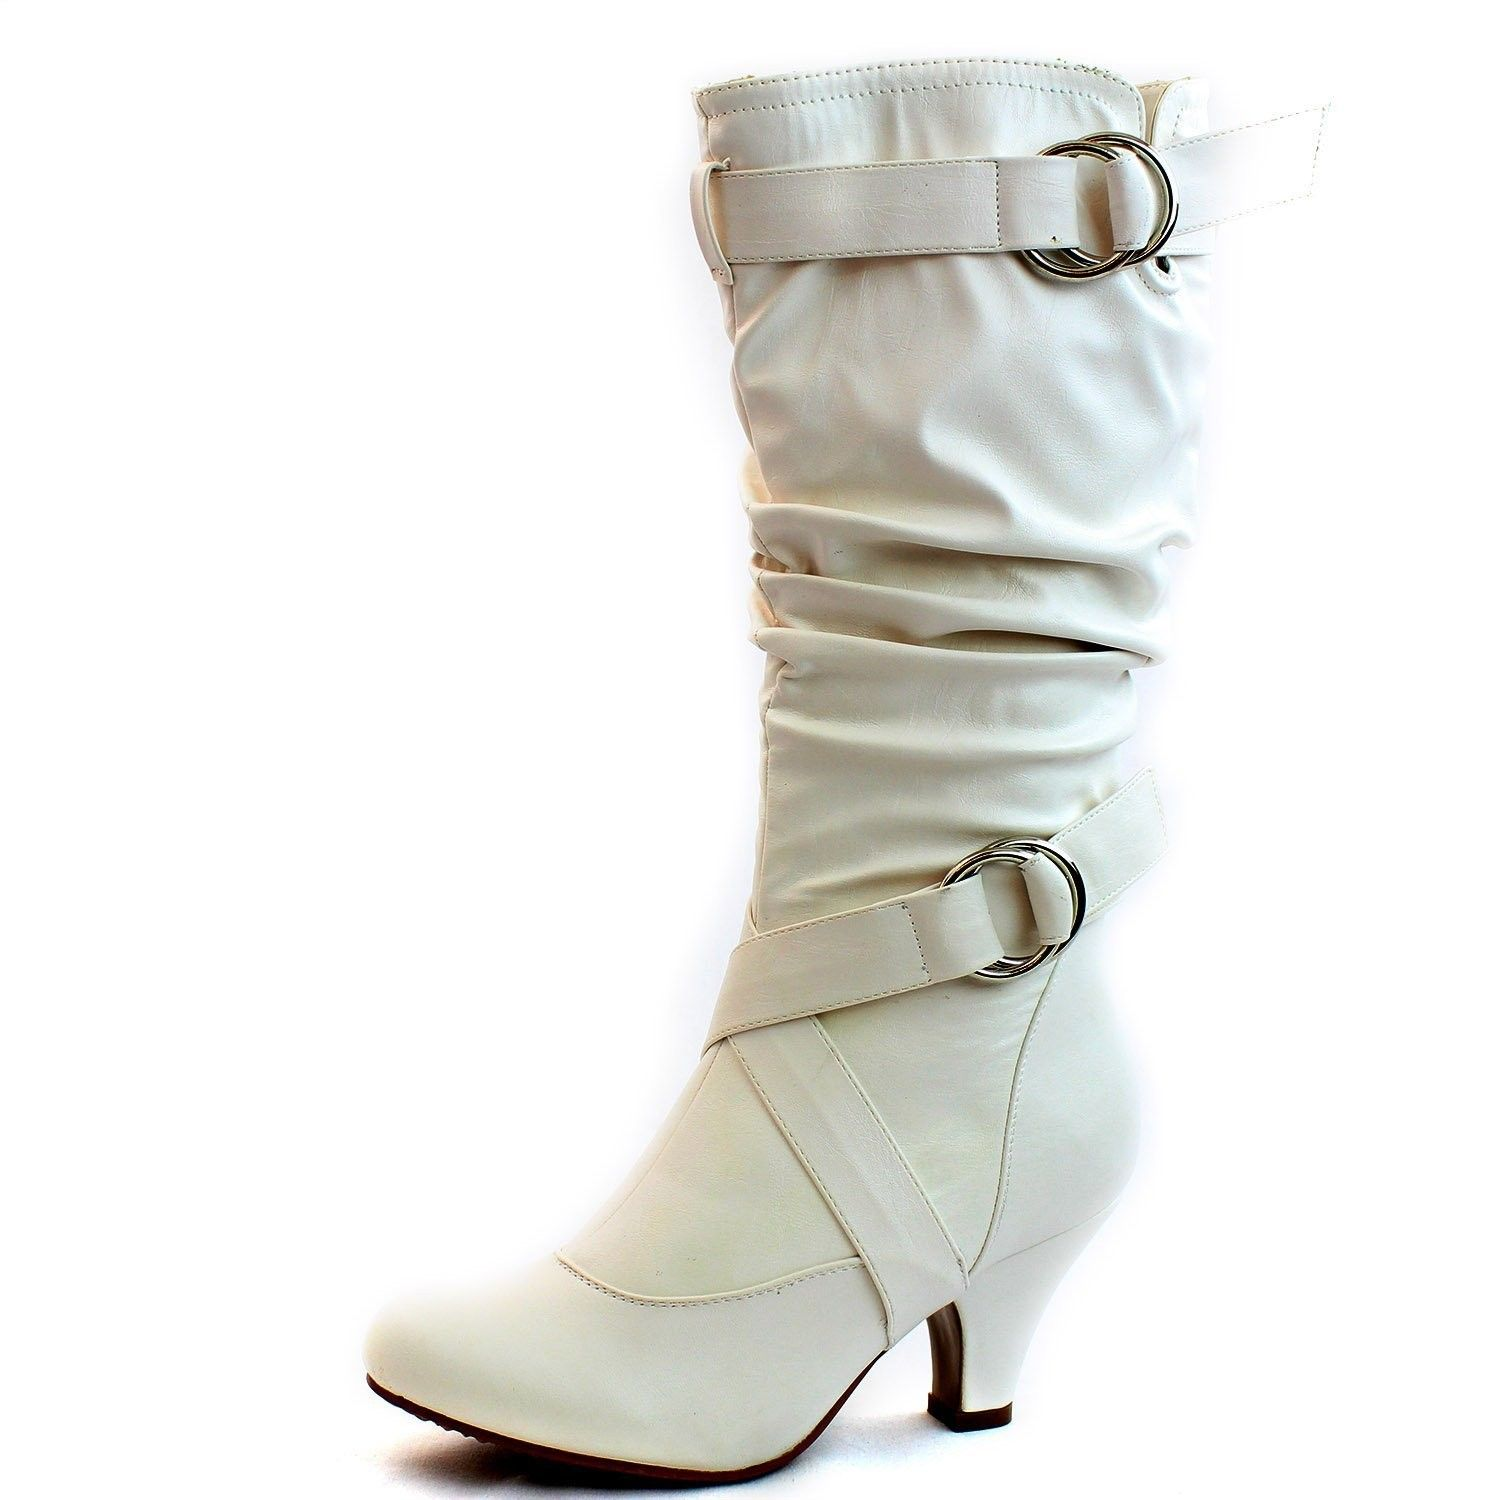 Women S Mid Calf Buckle Strap Pu Leather Comfortable Kitten Heel Knee High Boots Fashion Shoes White Cq11b169ulj Womens White Boots Comfortable Stylish Shoes Knee High Boots